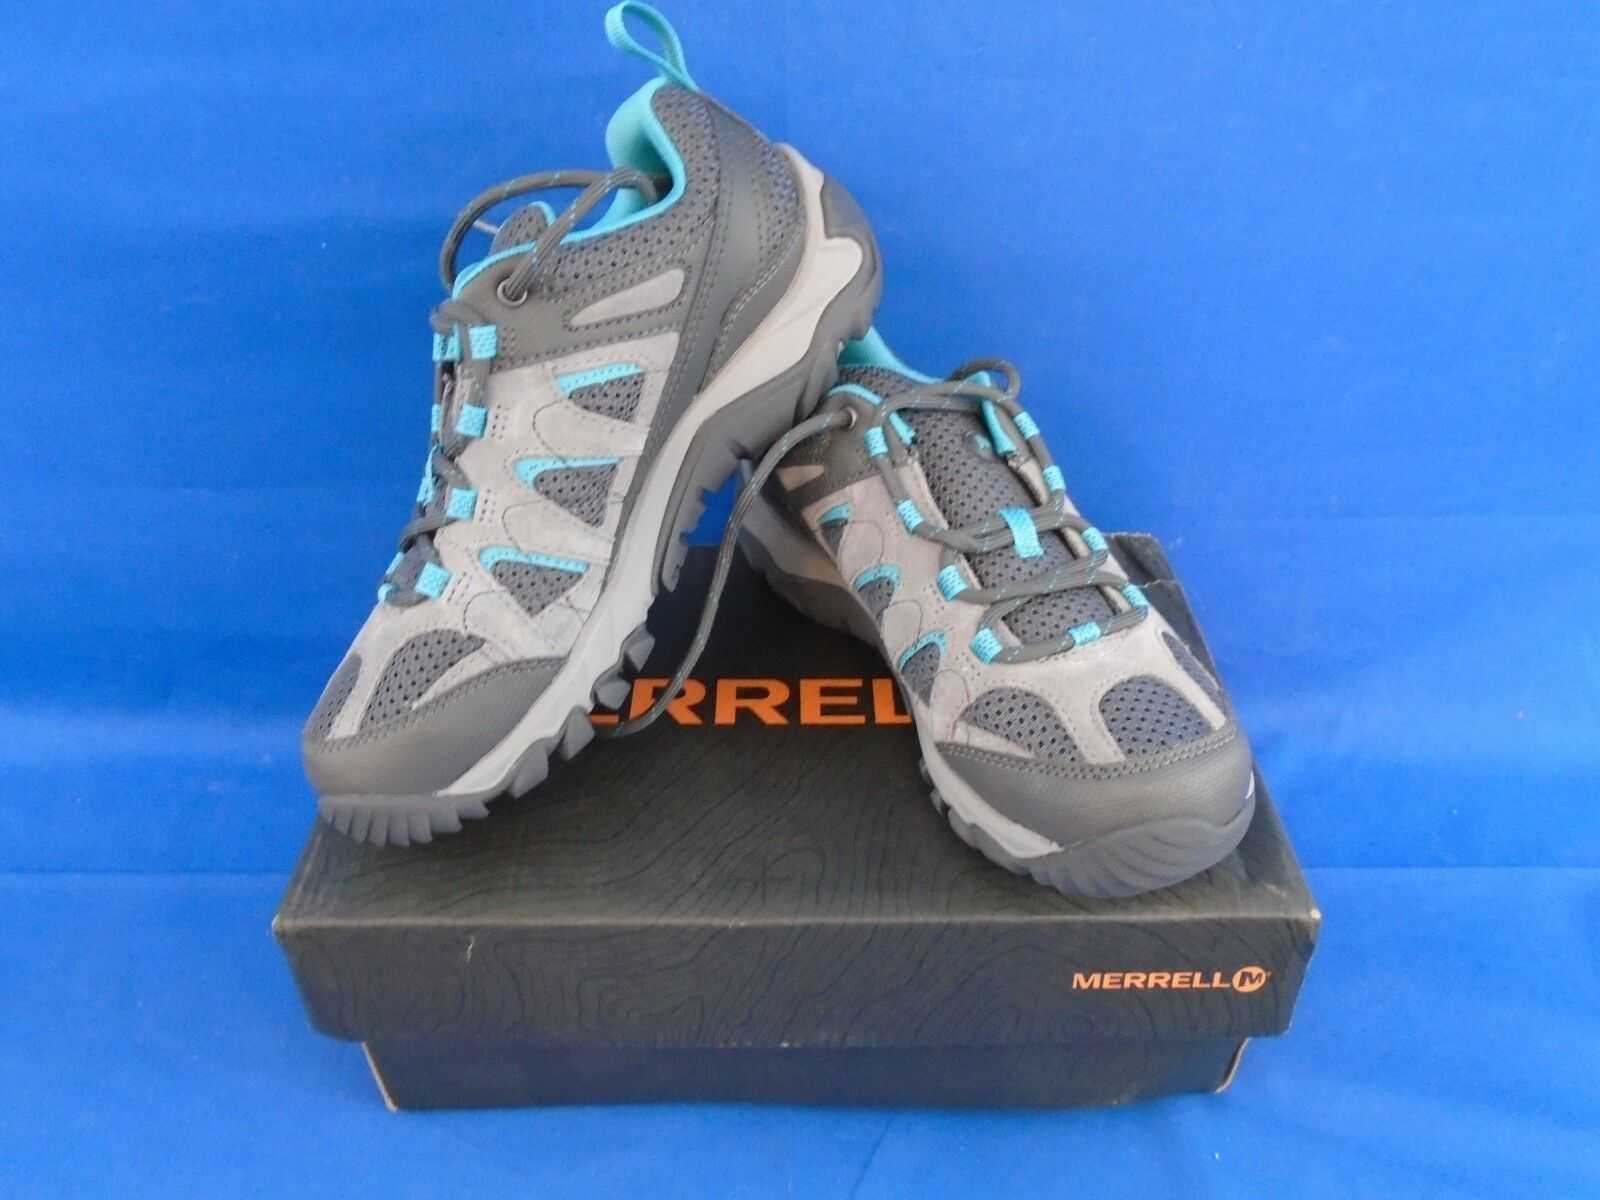 Merrell Women's Outmost Vent Hiking shoes Frost Grey 6 M US